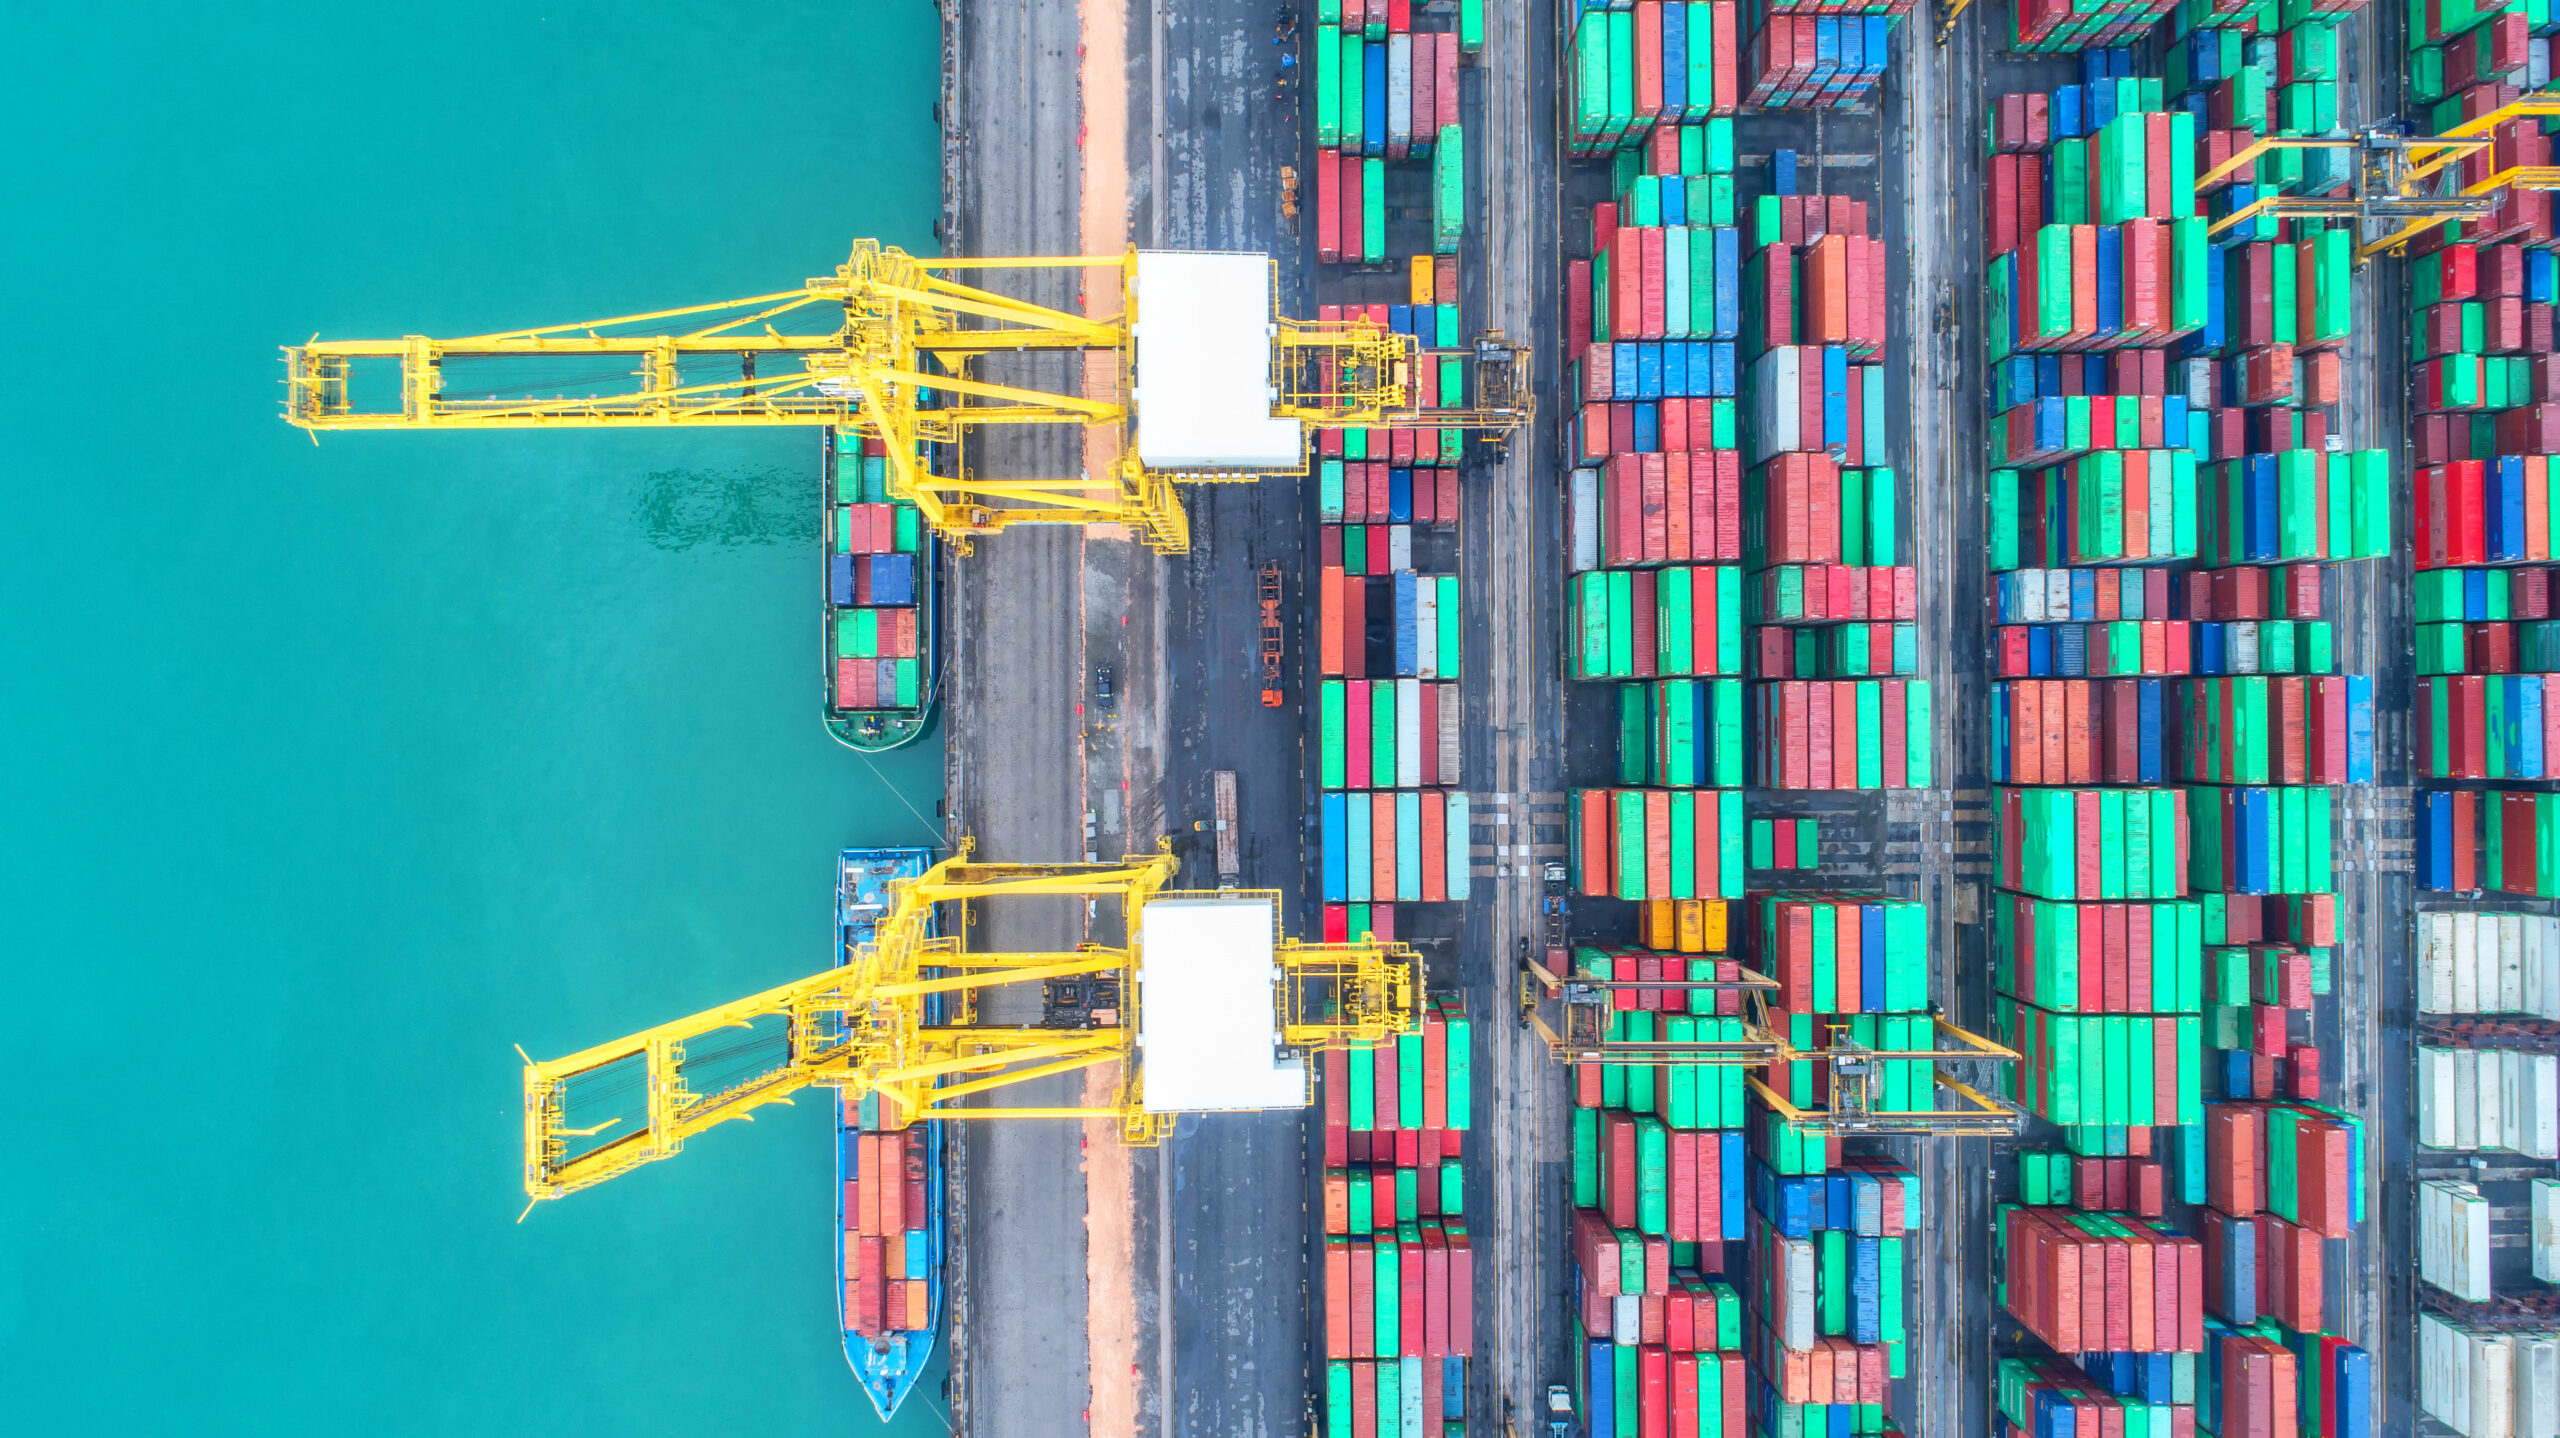 Container ship in export and import business and logistics. Shipping cargo to harbor by crane. Water transport International. Aerial view and top view